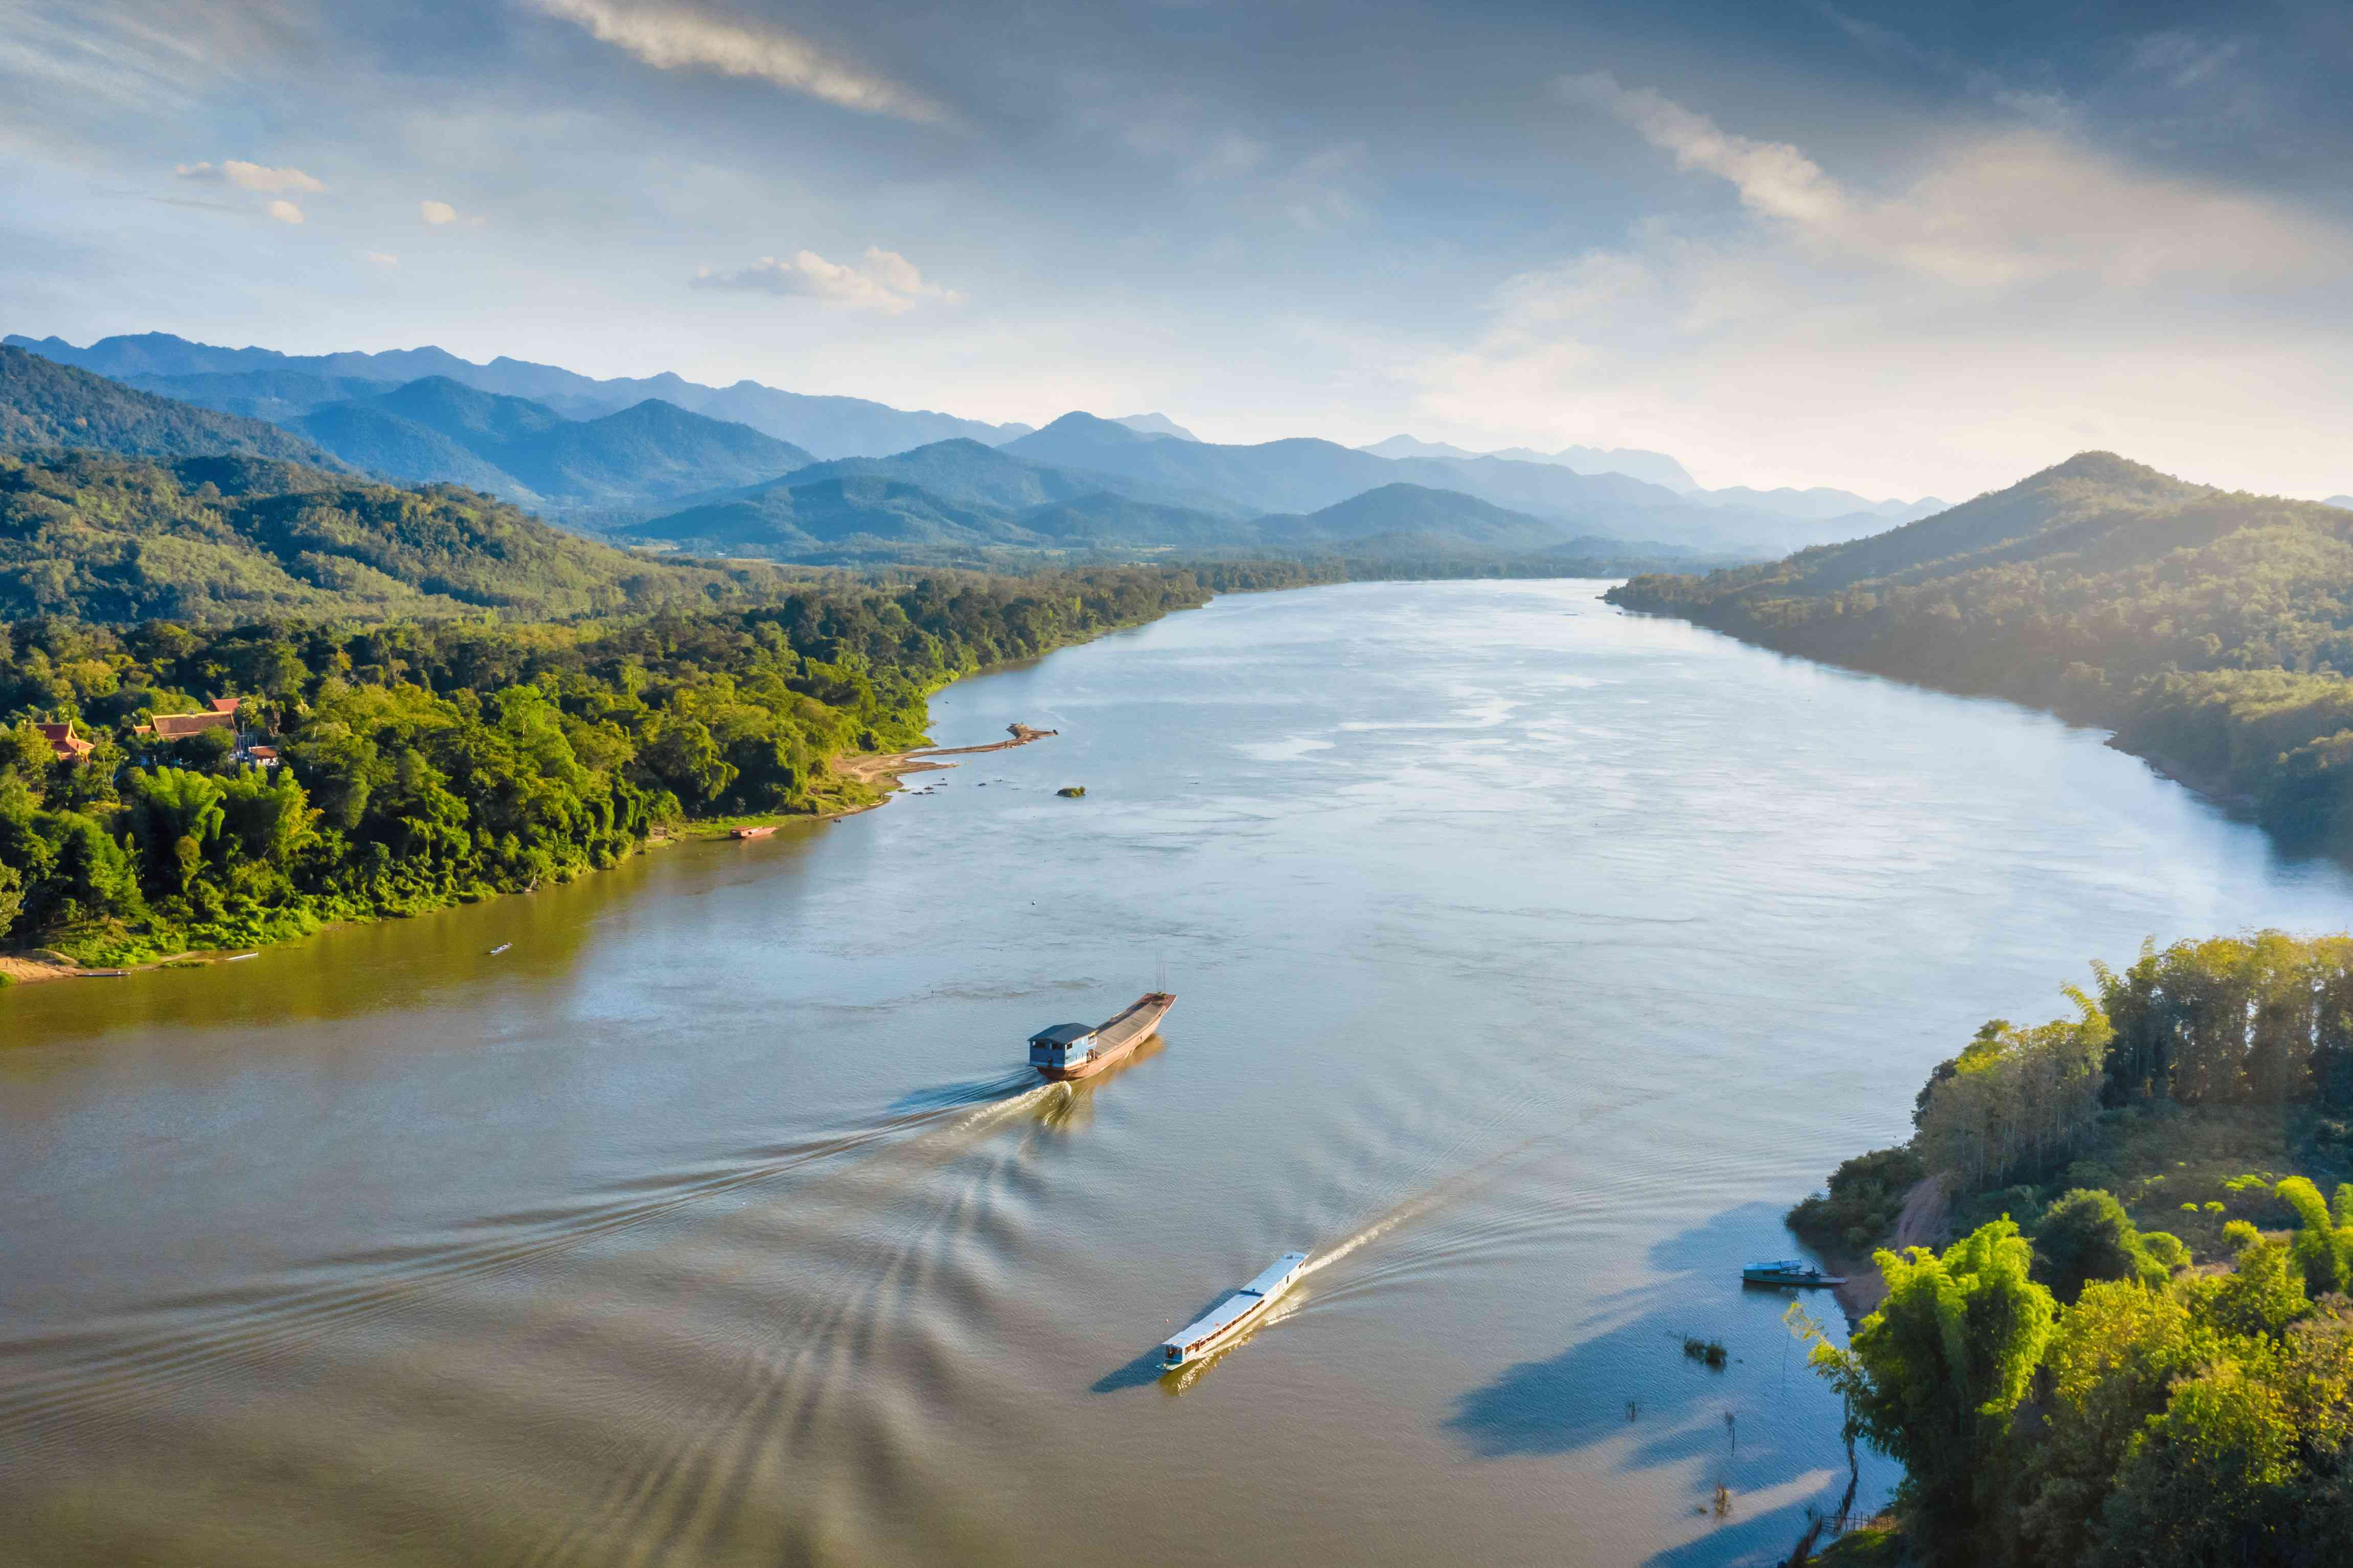 Mekong River in Asia